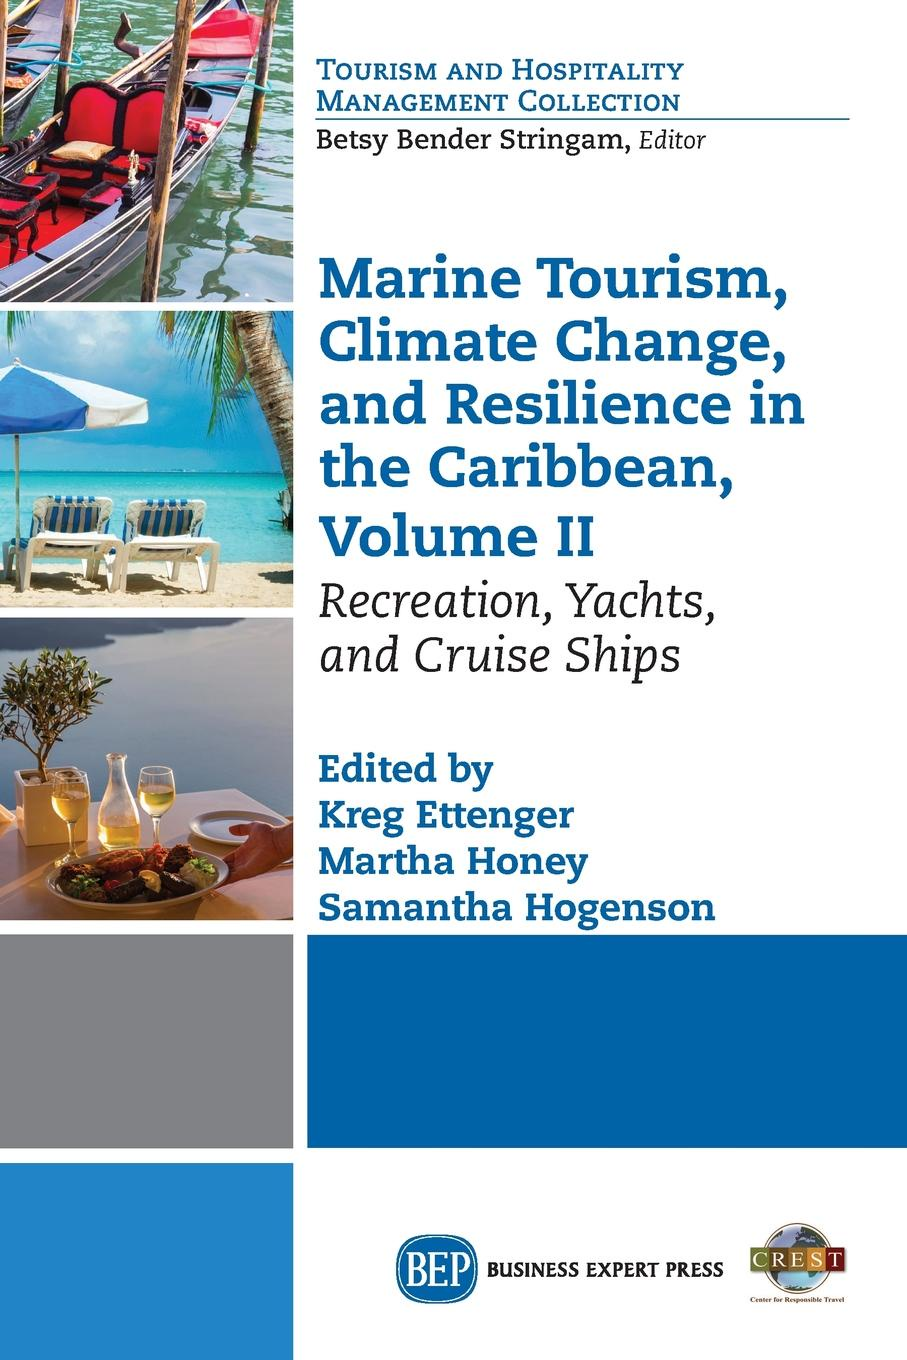 Marine Tourism, Climate Change, and Resilience in the Caribbean, Volume II. Recreation, Yachts, and Cruise Ships